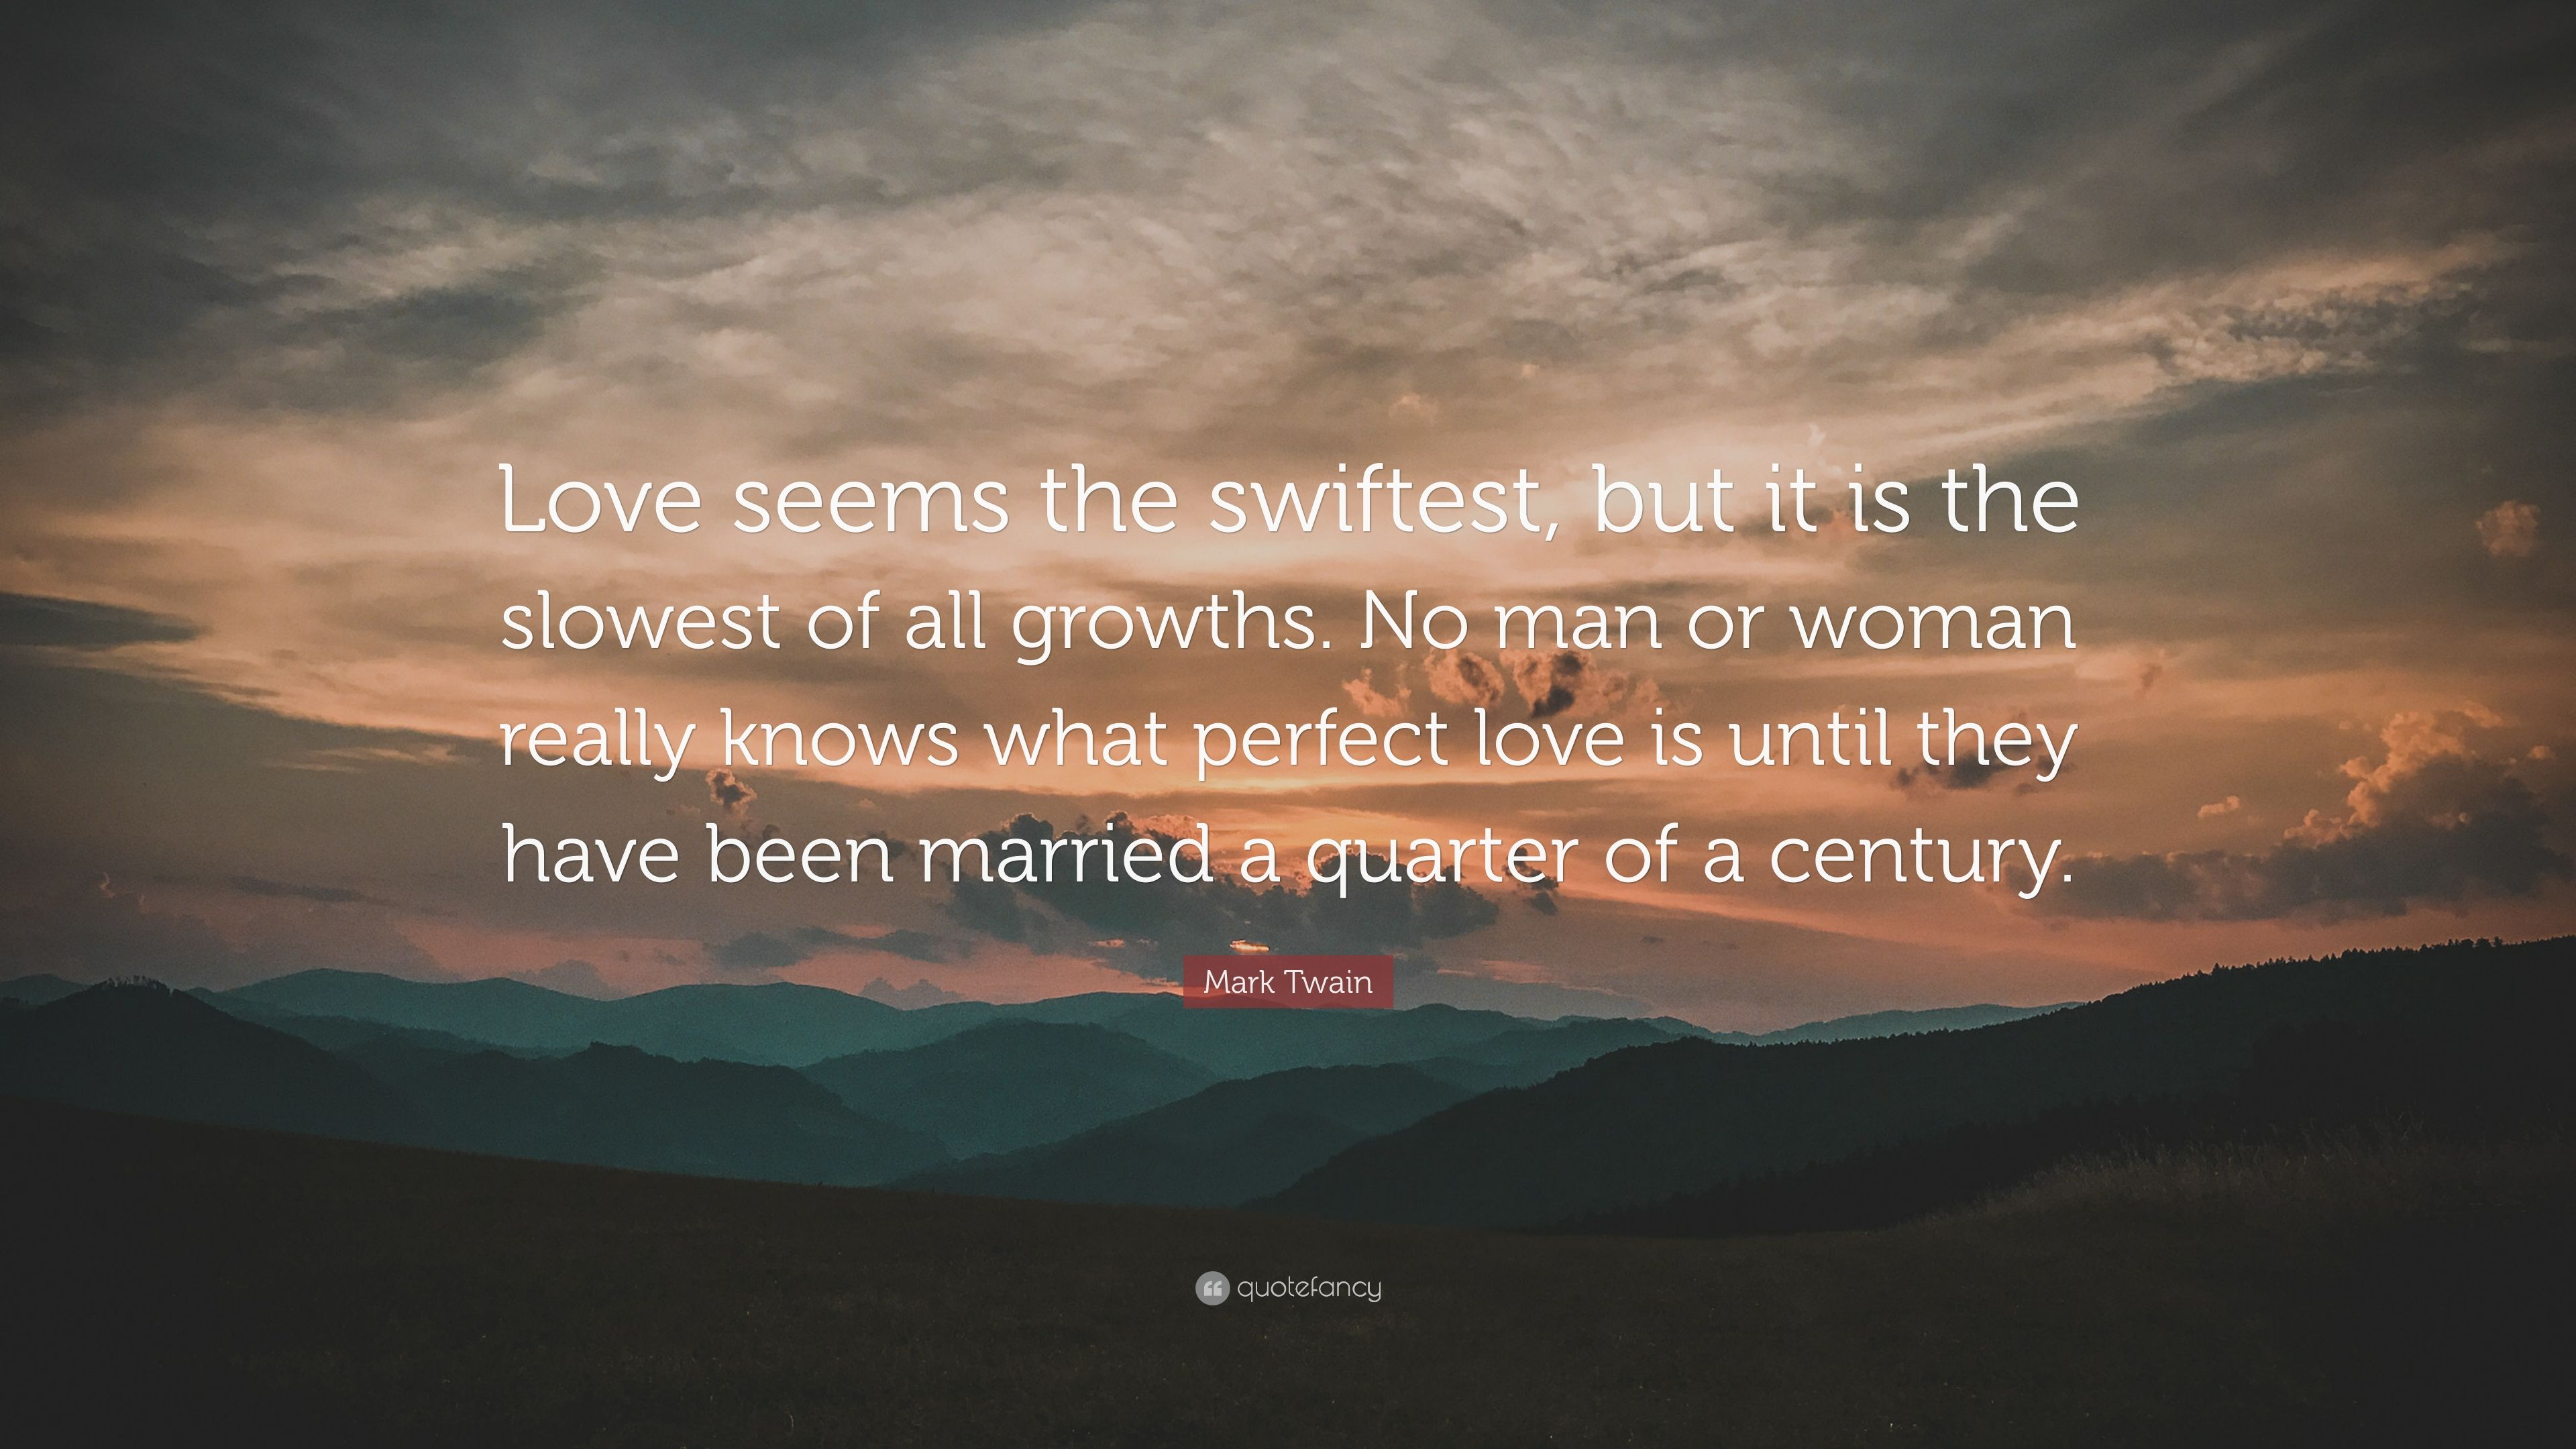 Mark Twain Quote Love Seems The Swiftest But It Is The Slowest Of